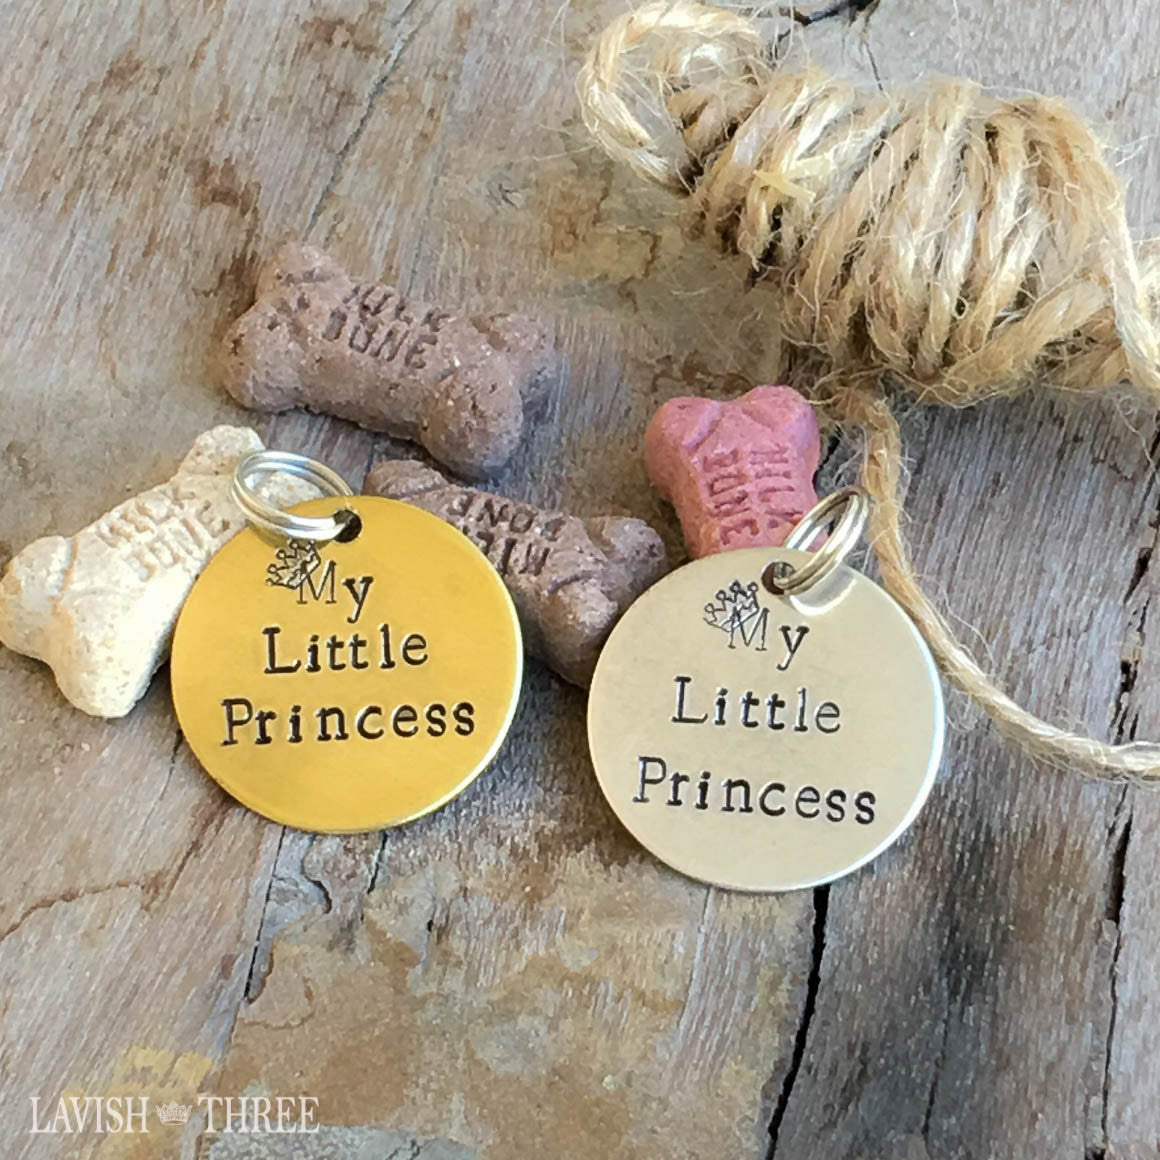 My little princess hand stamped dog or cat pet tag charm, brass or nickel